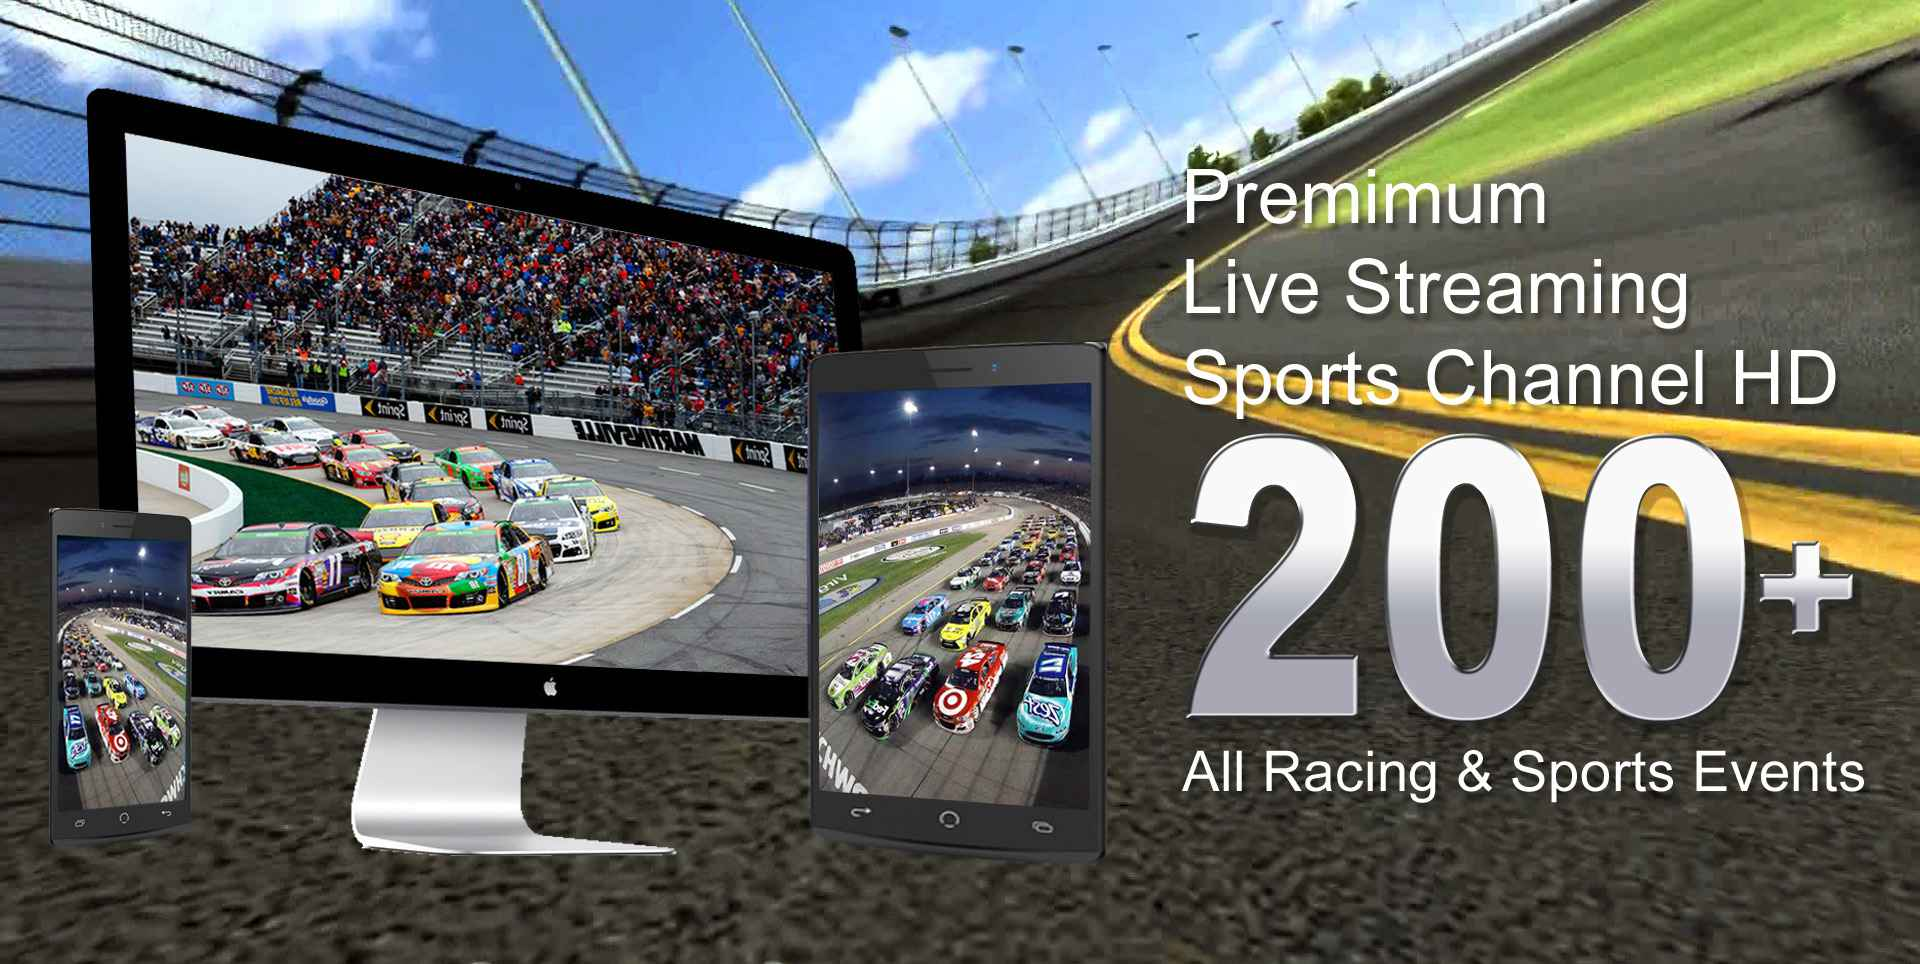 Nascar Firecracker 250 Race At Daytona Online